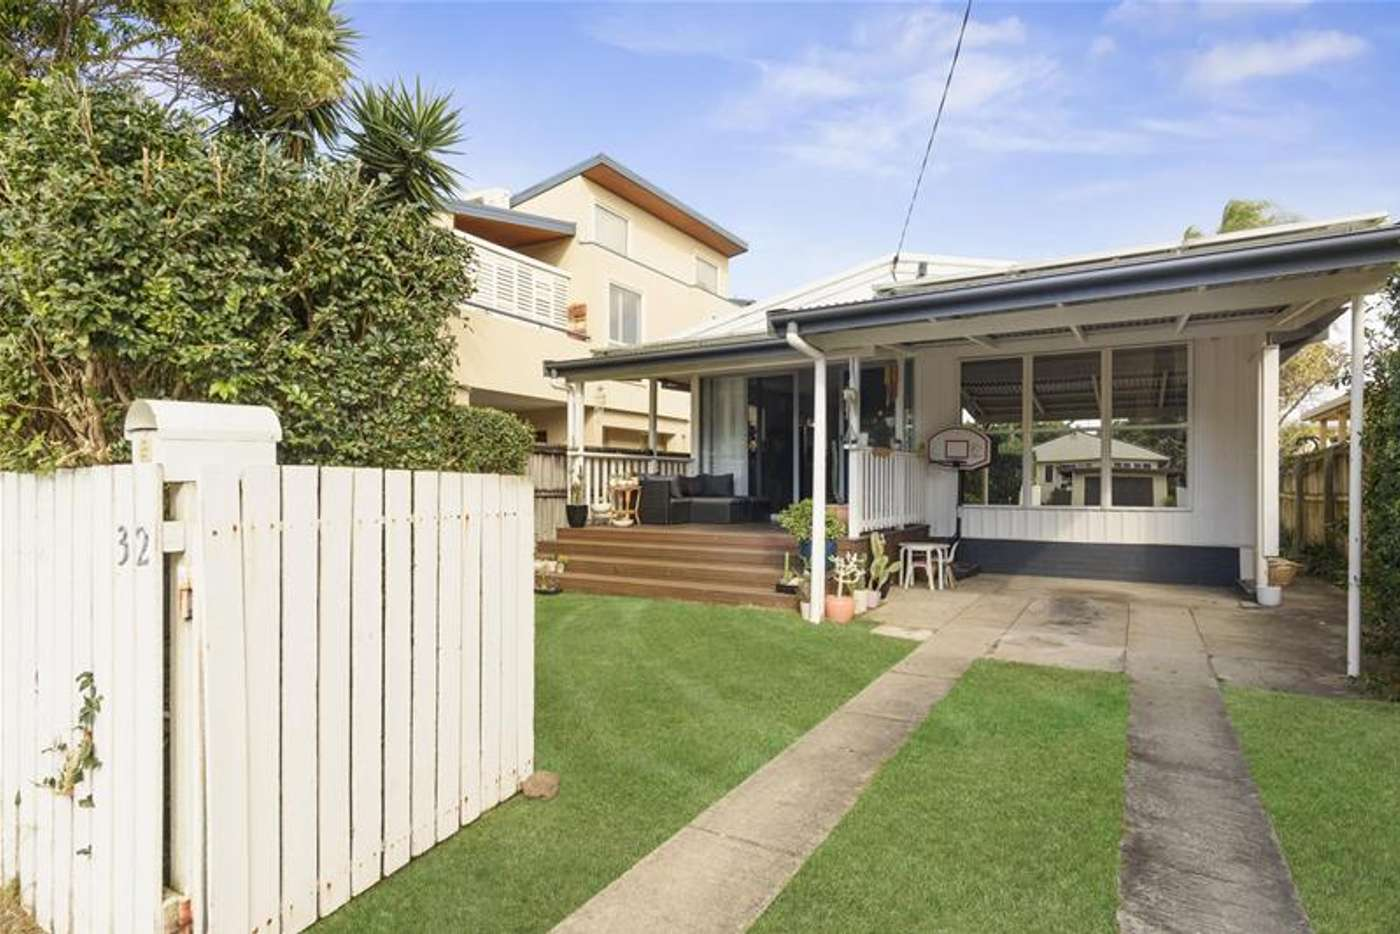 Sixth view of Homely house listing, 32 Sixth Avenue, Palm Beach QLD 4221